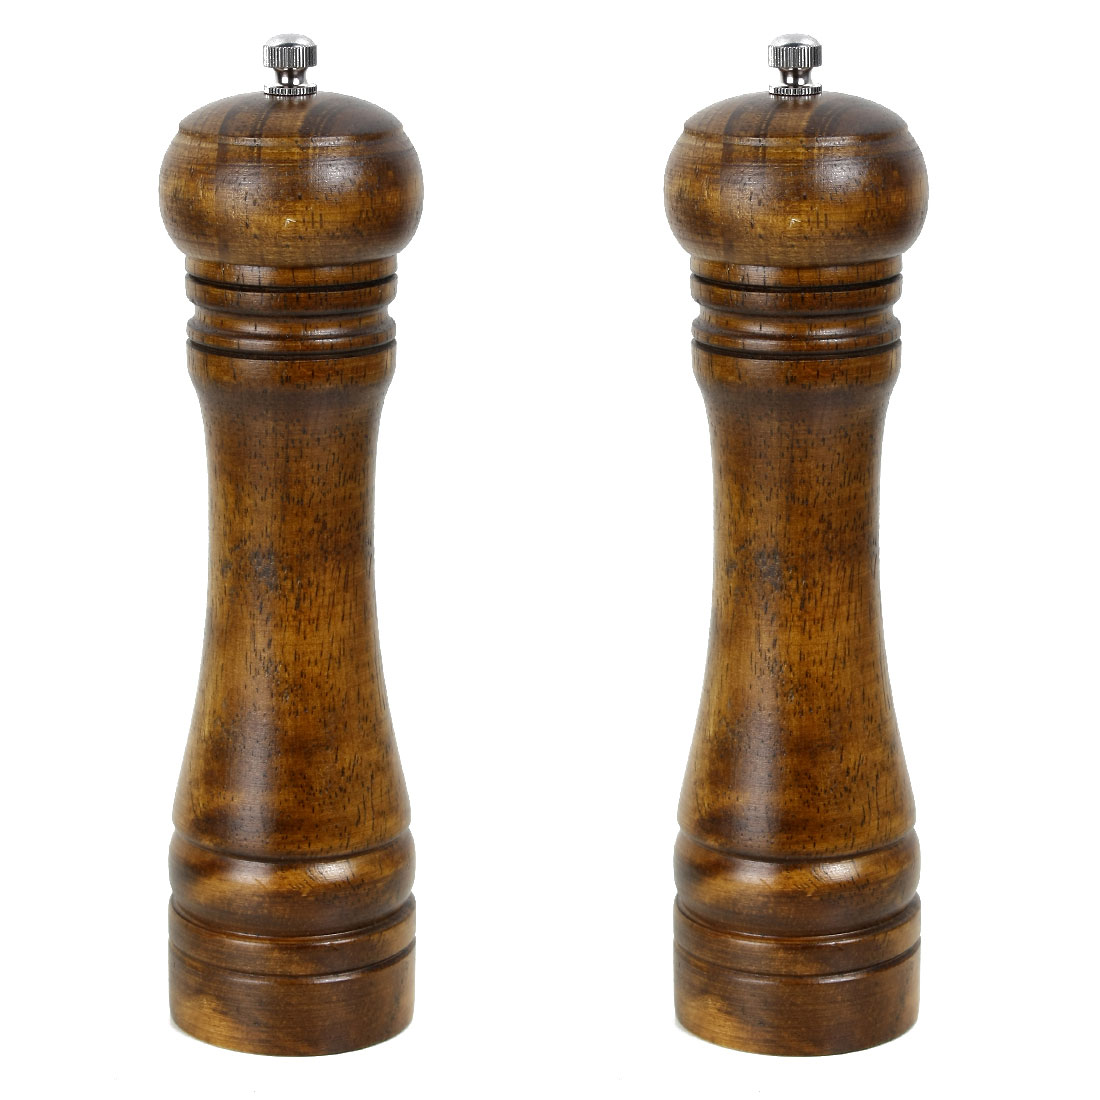 2 Pack Kitchen 2 Pack Kitchen Restaurant Hand Crank Twist Spice Salt Mill Grinder Pepper Shaker Cooking Wood Color